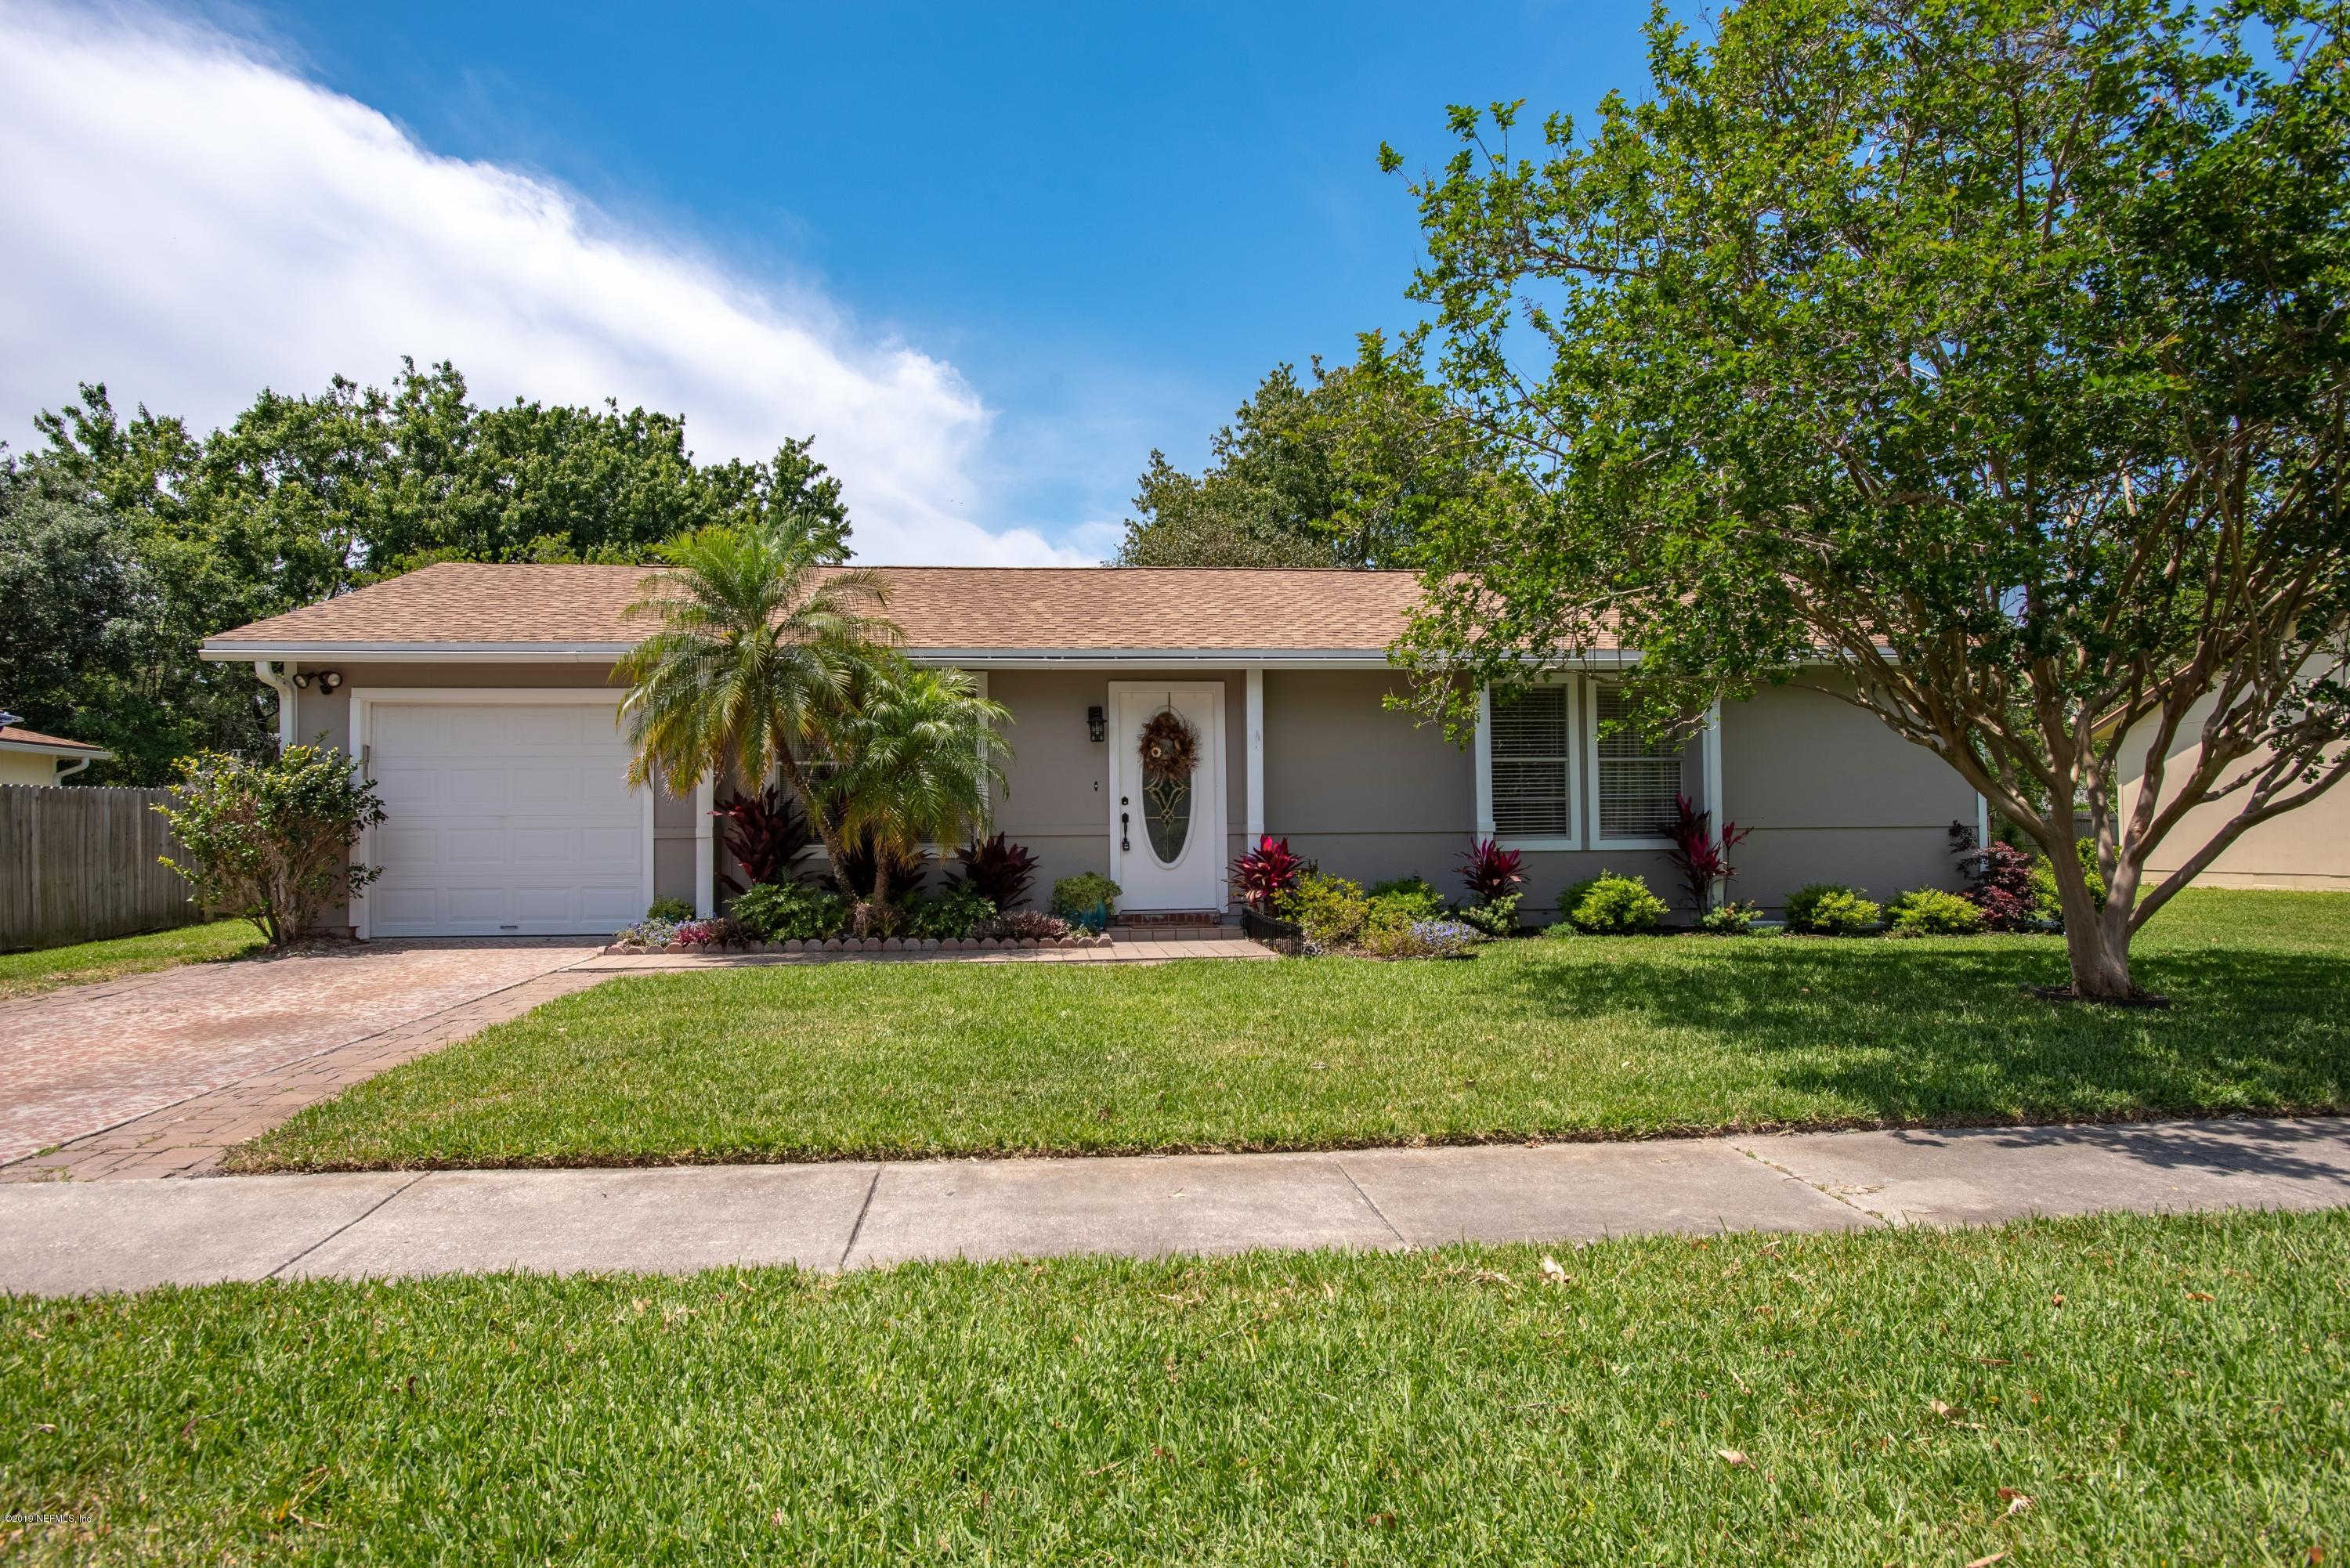 10862 Horse Track Dr E, Jacksonville, FL 32257 now has a new price of $220,000!